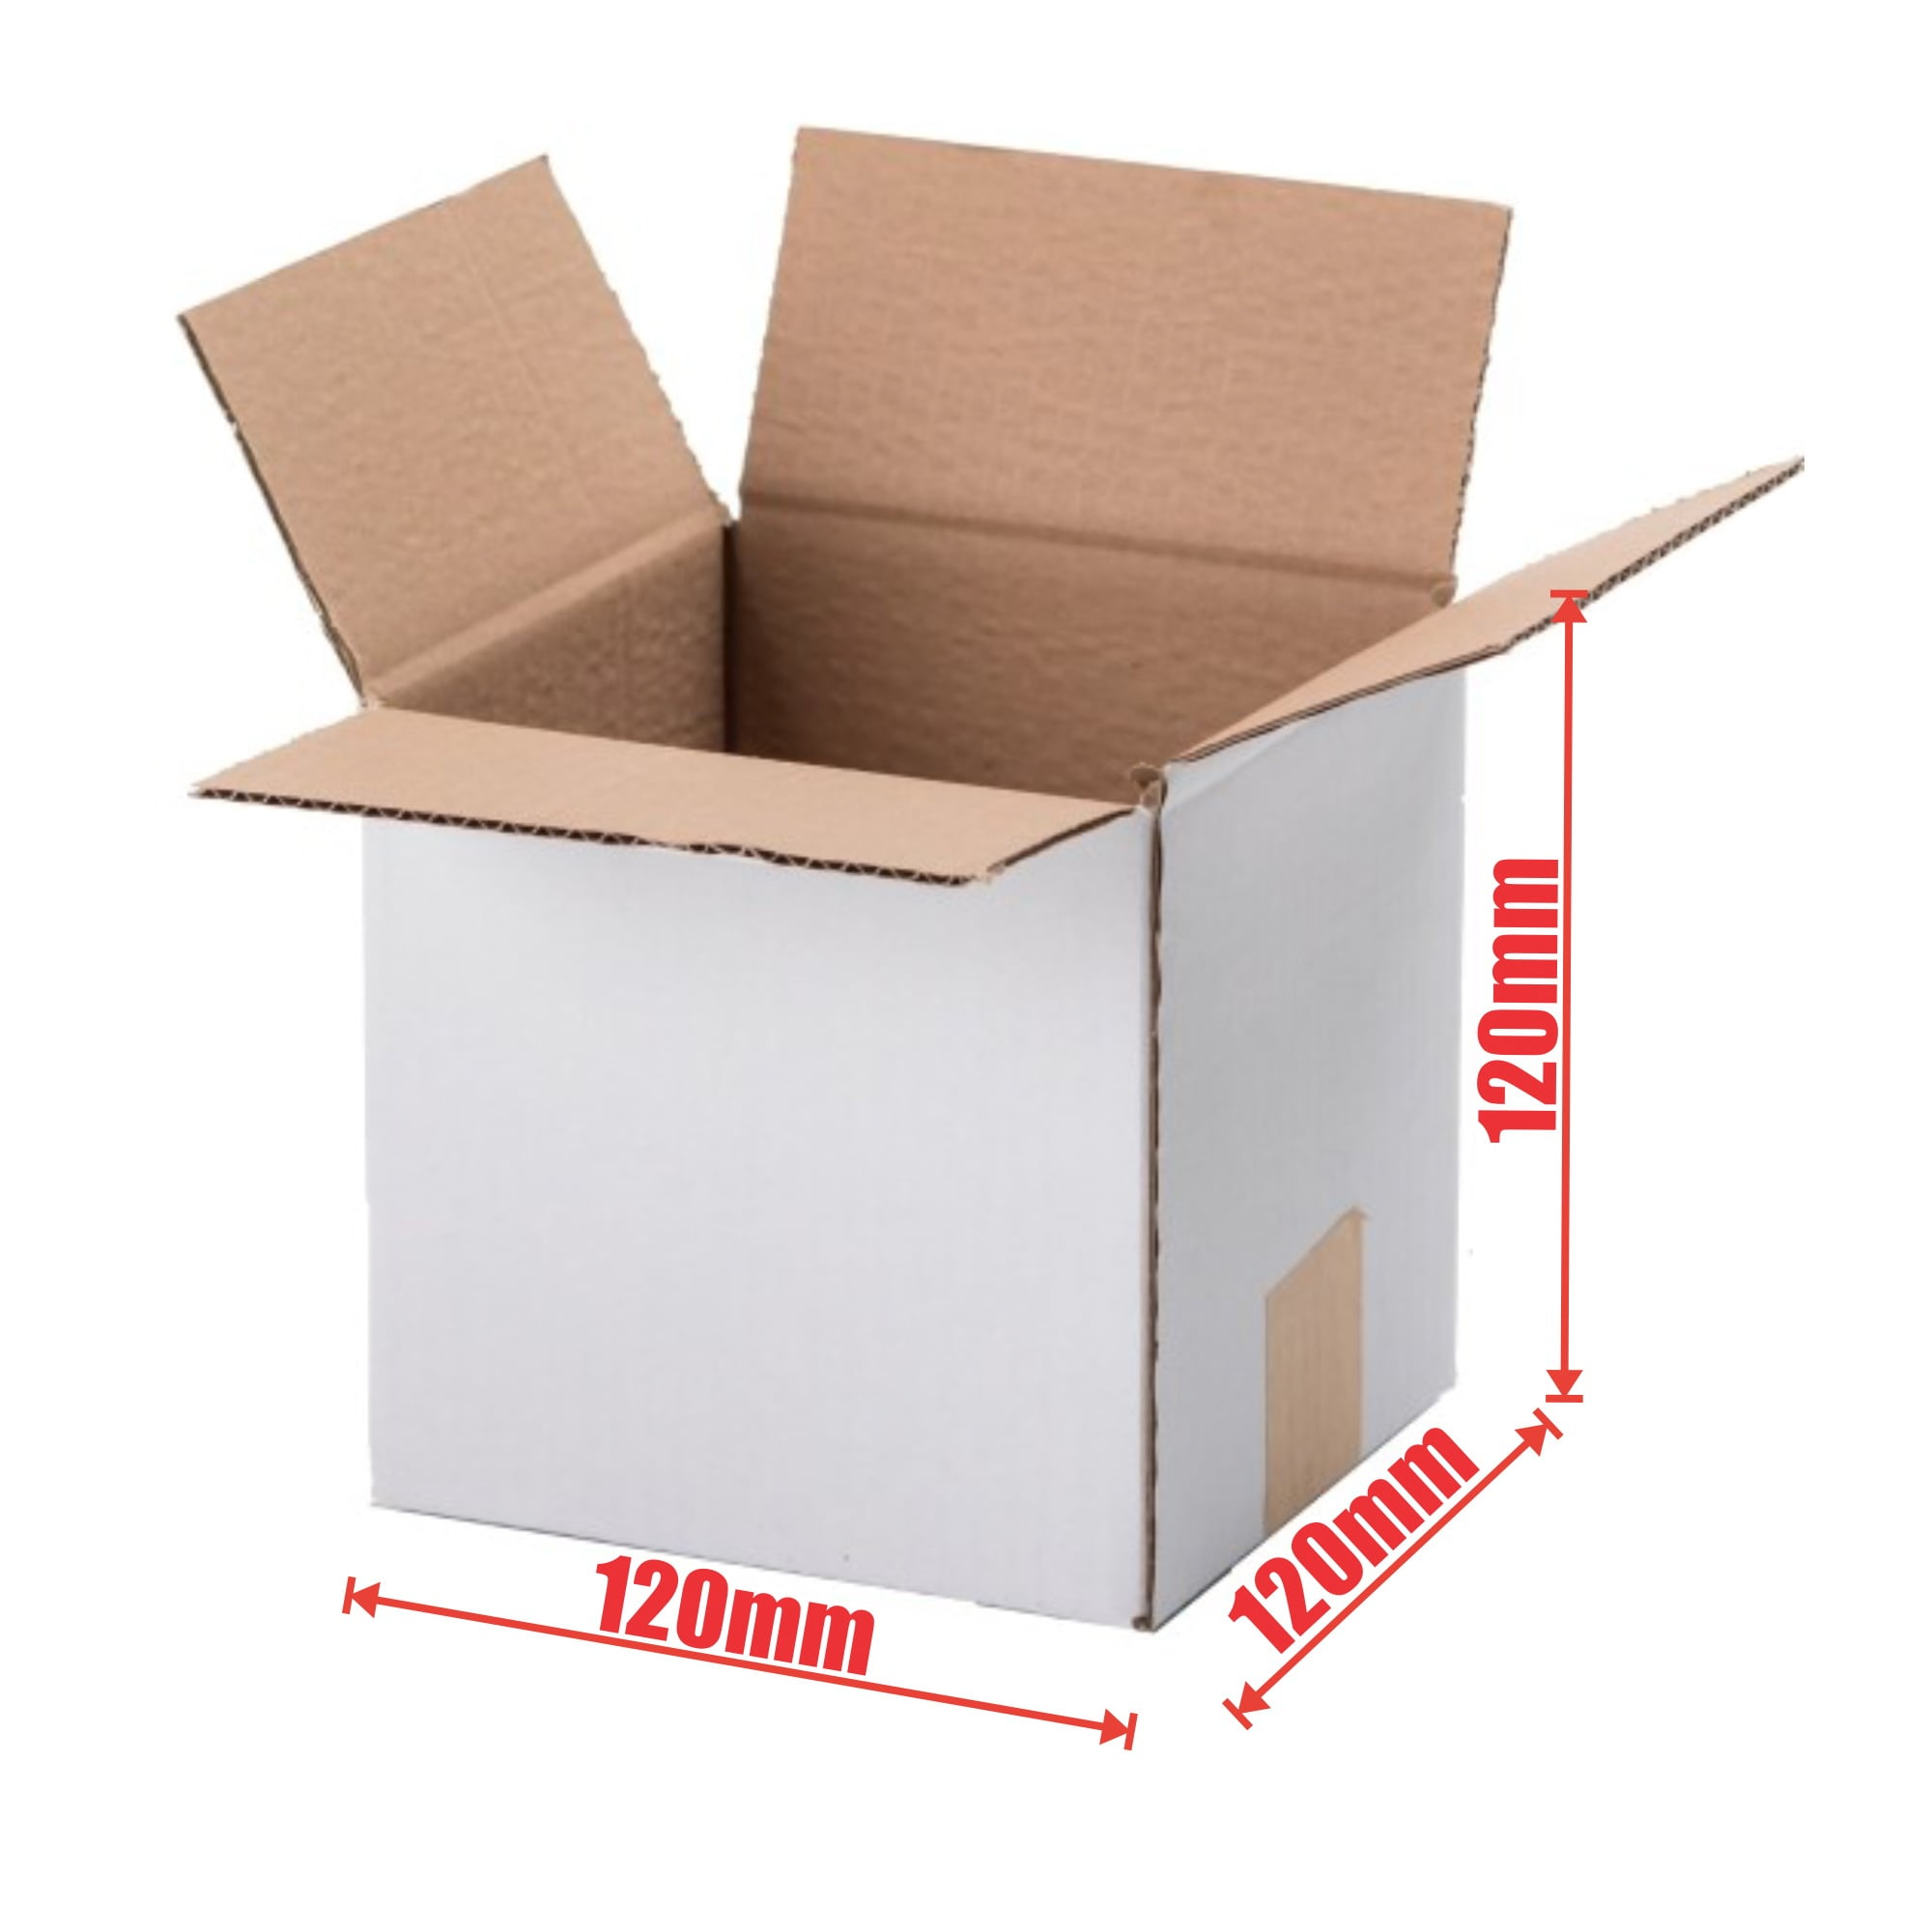 100pcs Regular Slotted 120 x 120 x 120mm Mailing Box